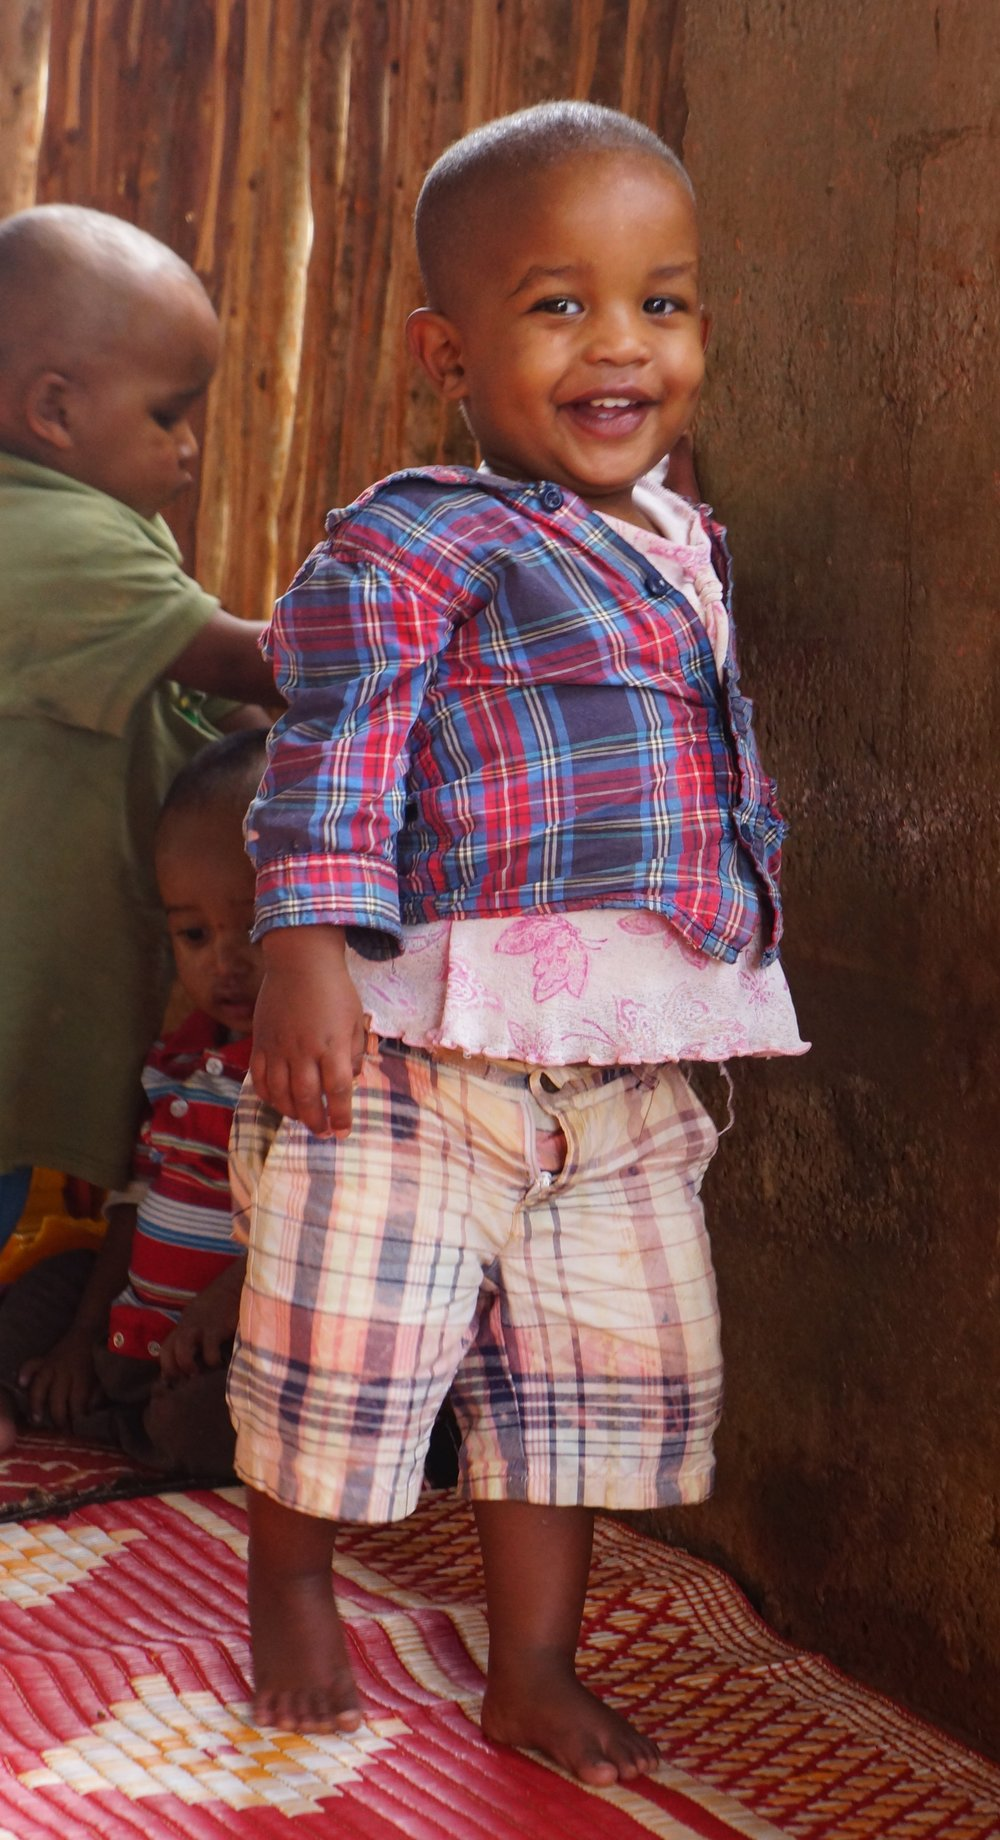 Abduramane   Abduramane was abandoned as a newborn, but he has grown into a toddler who loves to be snuggled and cuddled, and is a fun loving easy going boy. He is walking like a champ!Abduramane is generously sponsored by Molly Talla and Family.